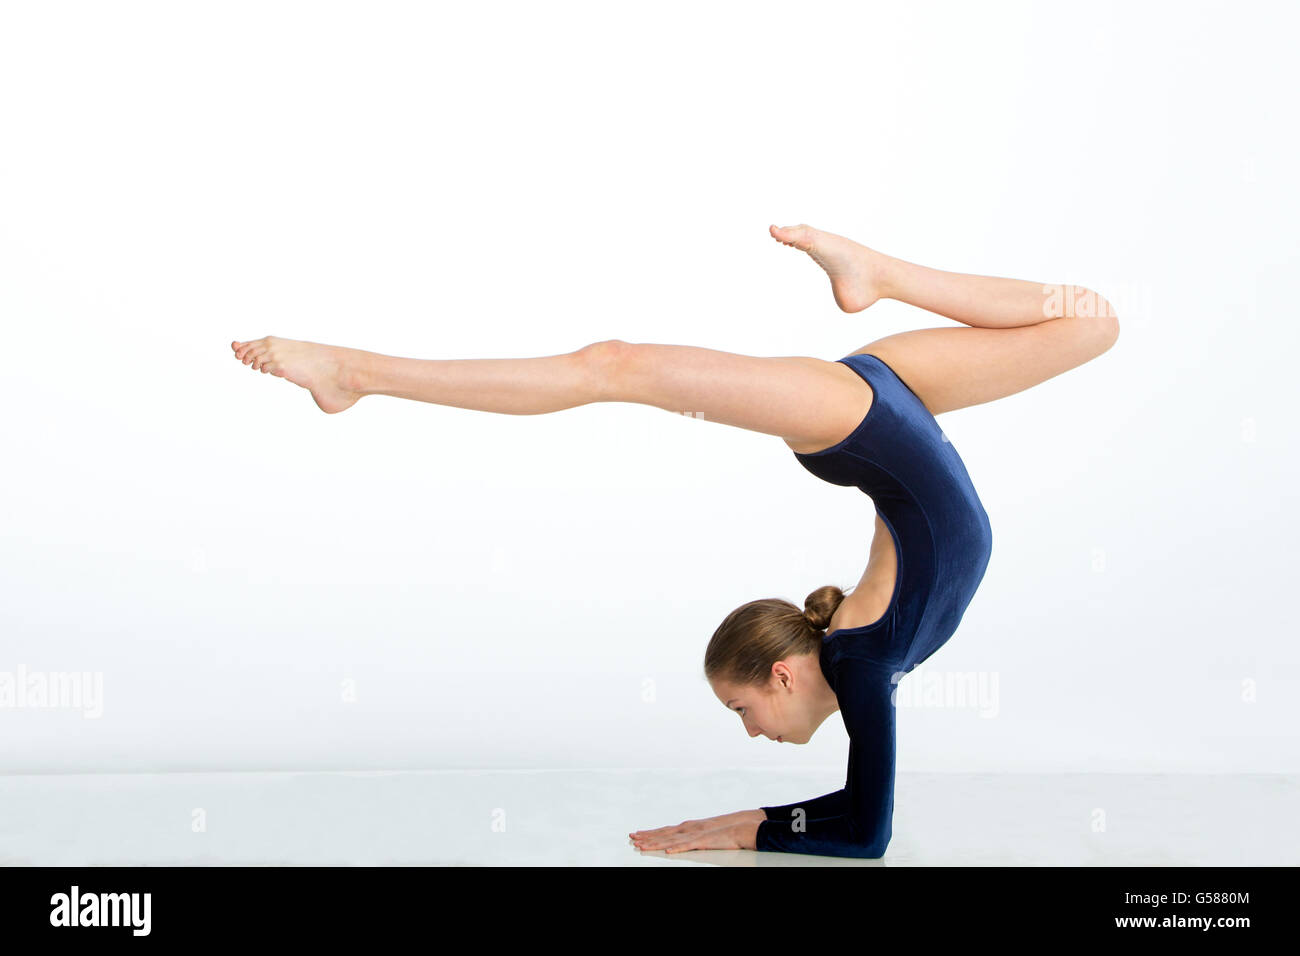 Female gymnast balancing in a pose on her arms against a white background. - Stock Image